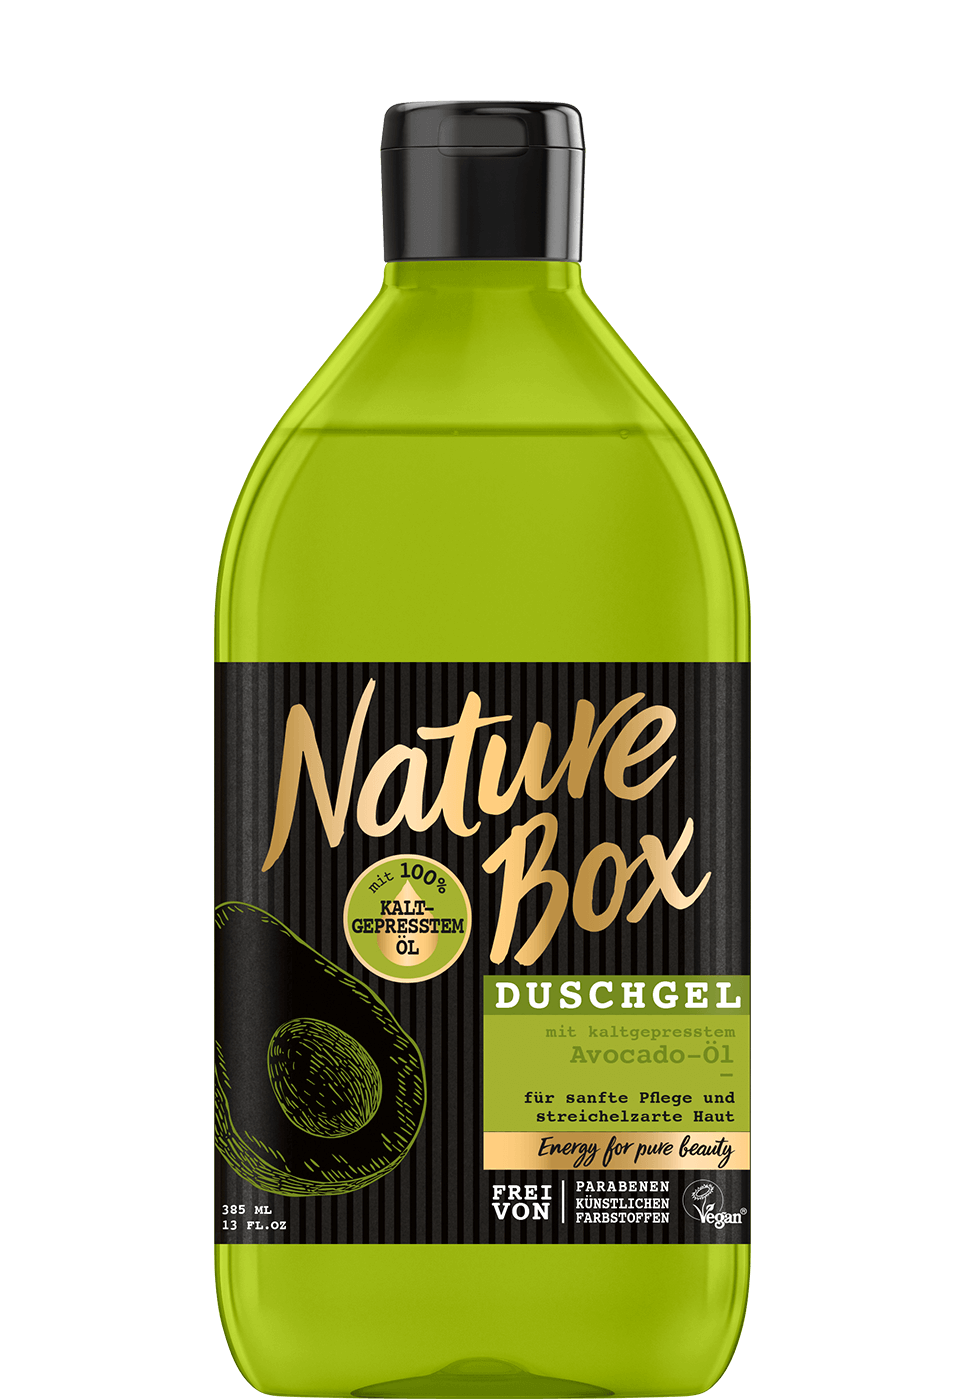 naturebox_ch_haut_avocado_duschgel_970x1400